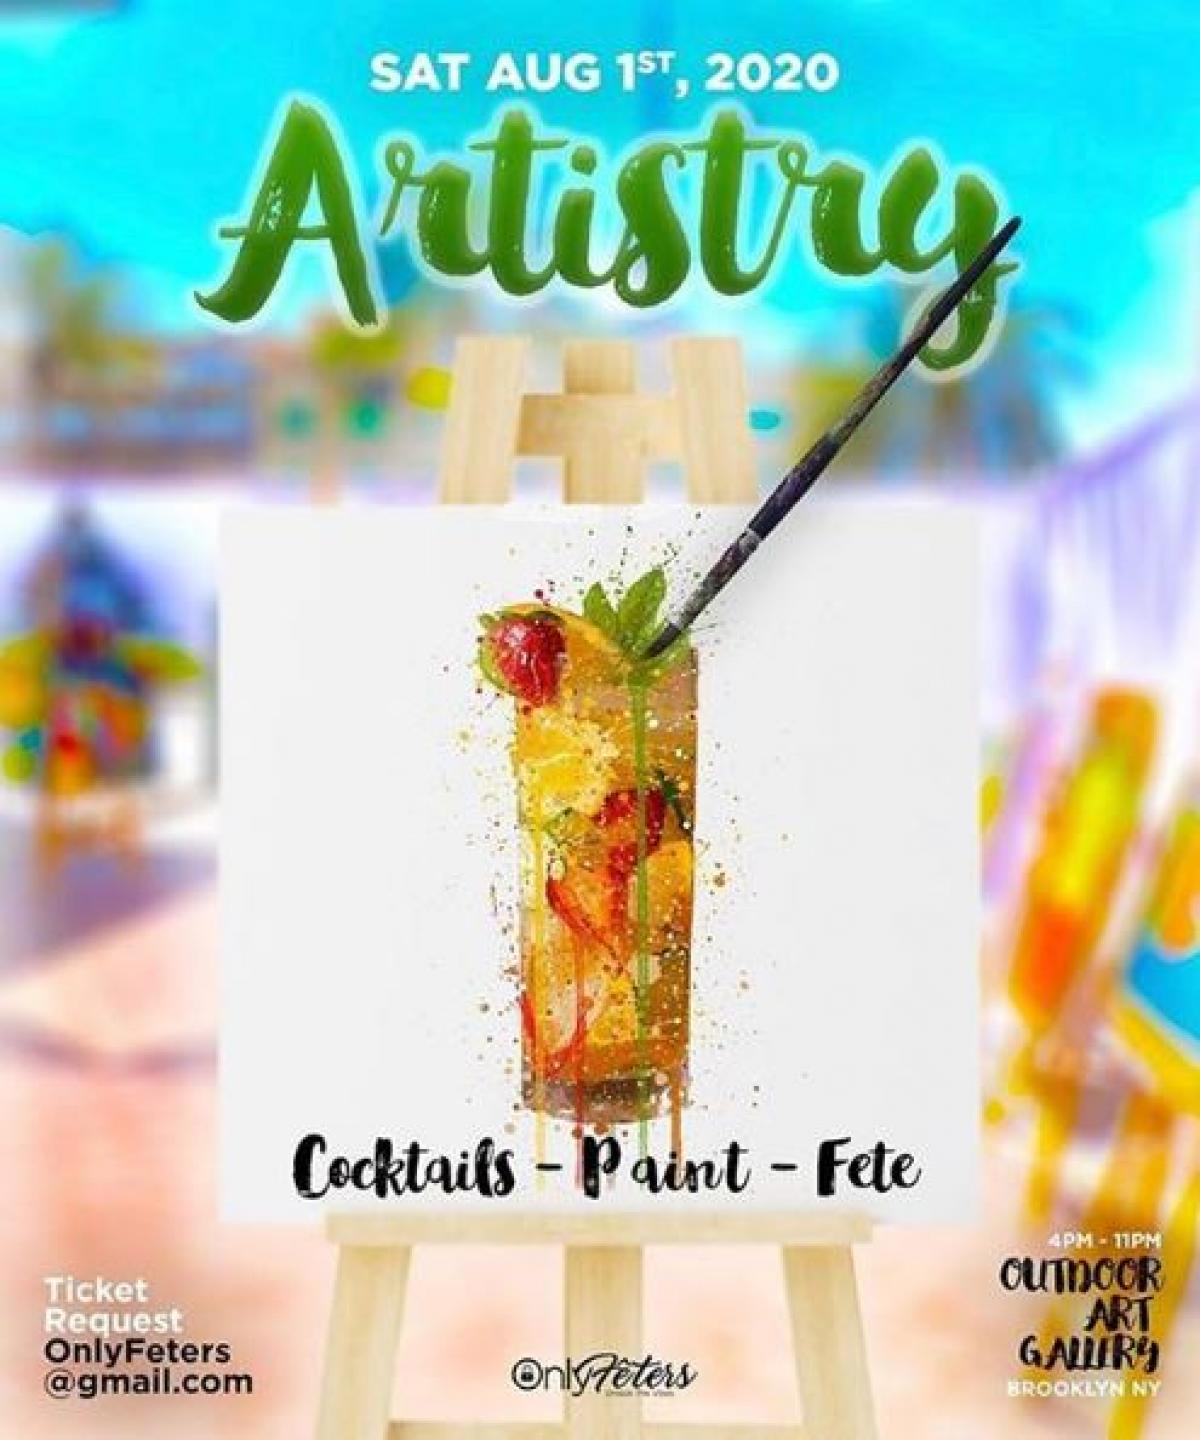 Artistry flyer or graphic.